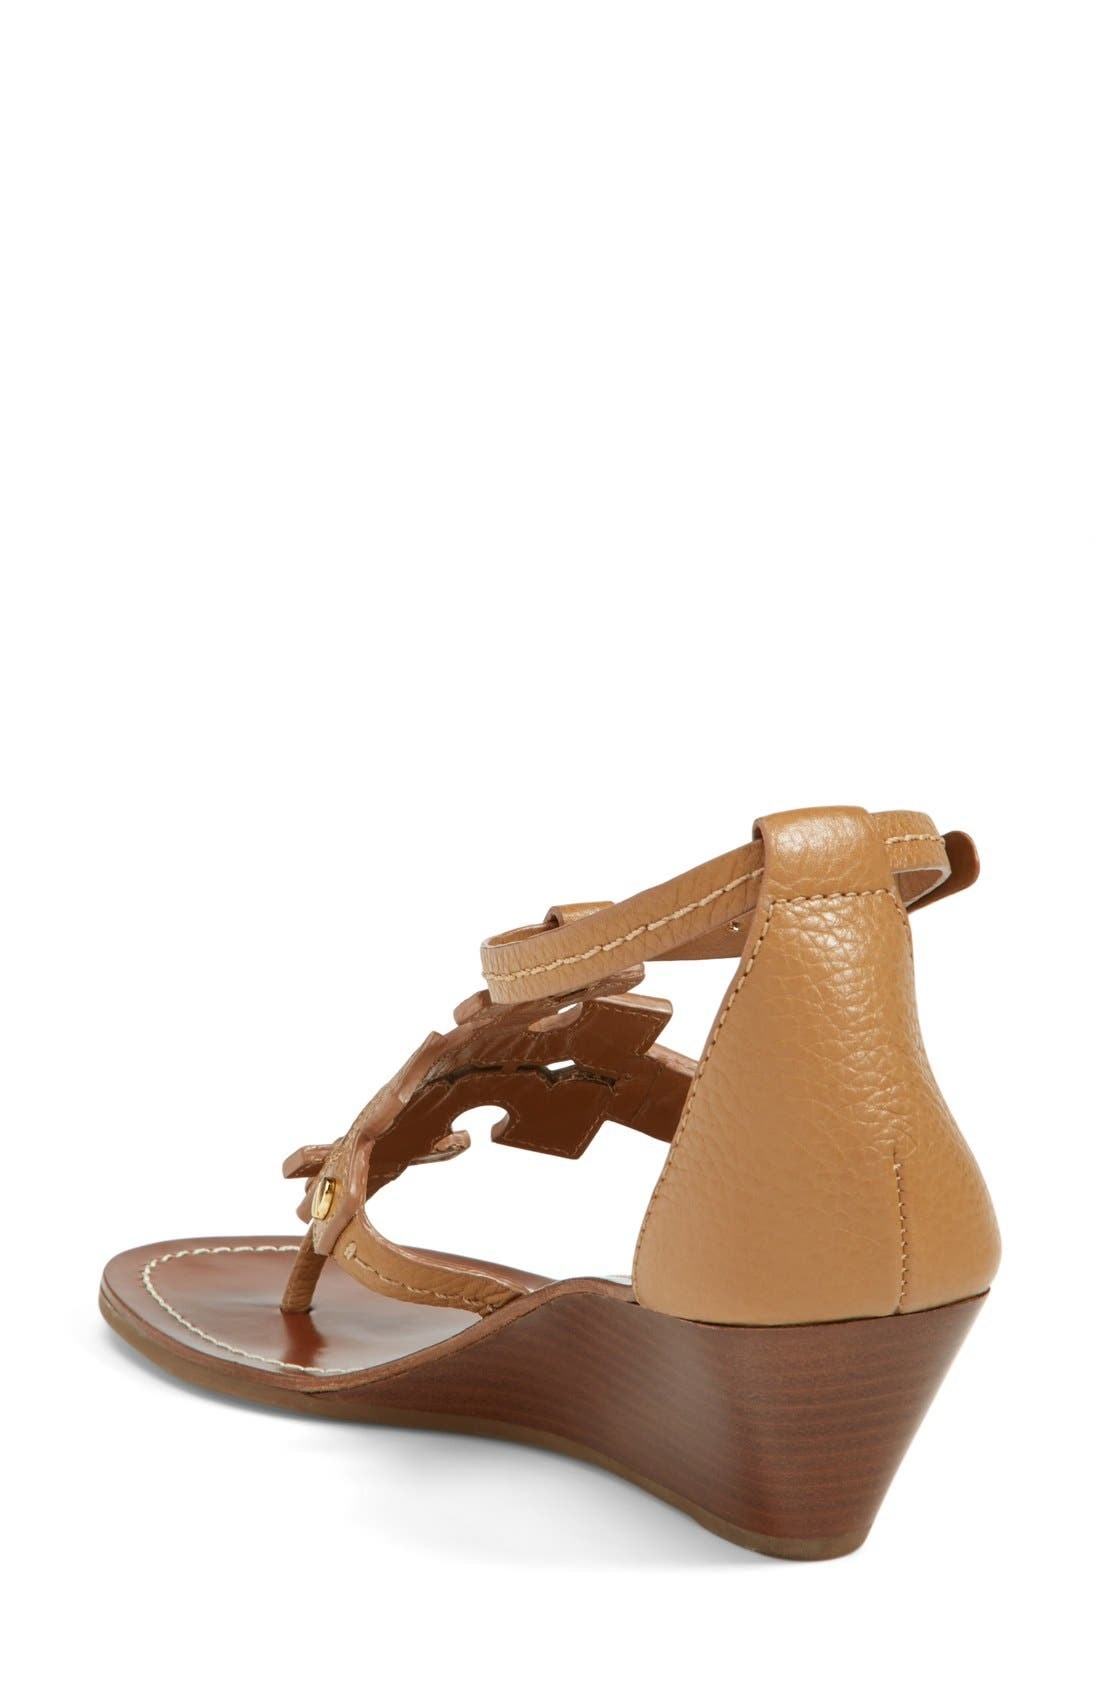 Alternate Image 2  - Tory Burch 'Chandler' Wedge Leather Sandal (Women)